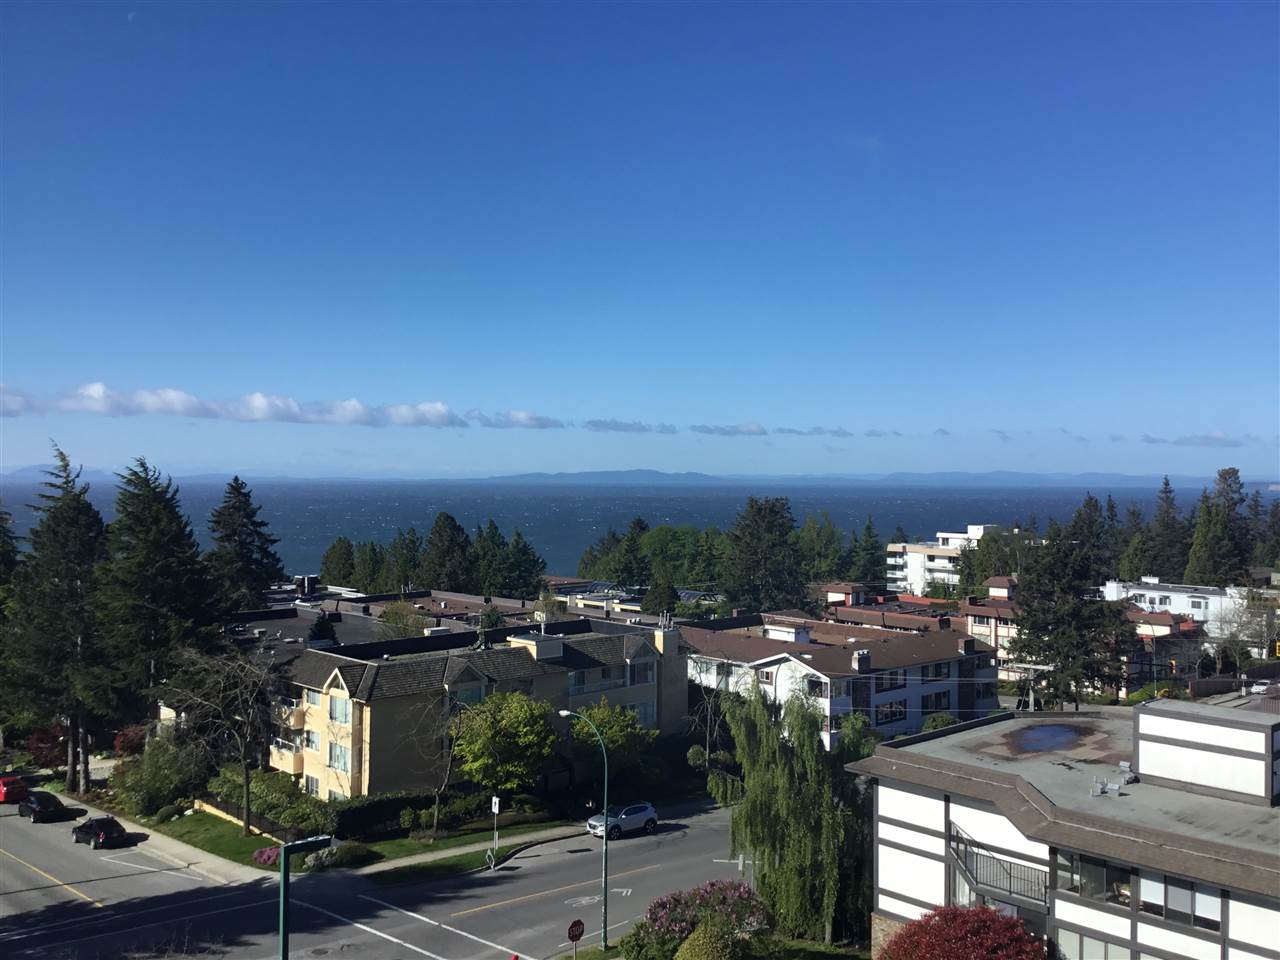 611 1442 FOSTER STREET - White Rock Apartment/Condo for sale, 2 Bedrooms (R2533524) - #13